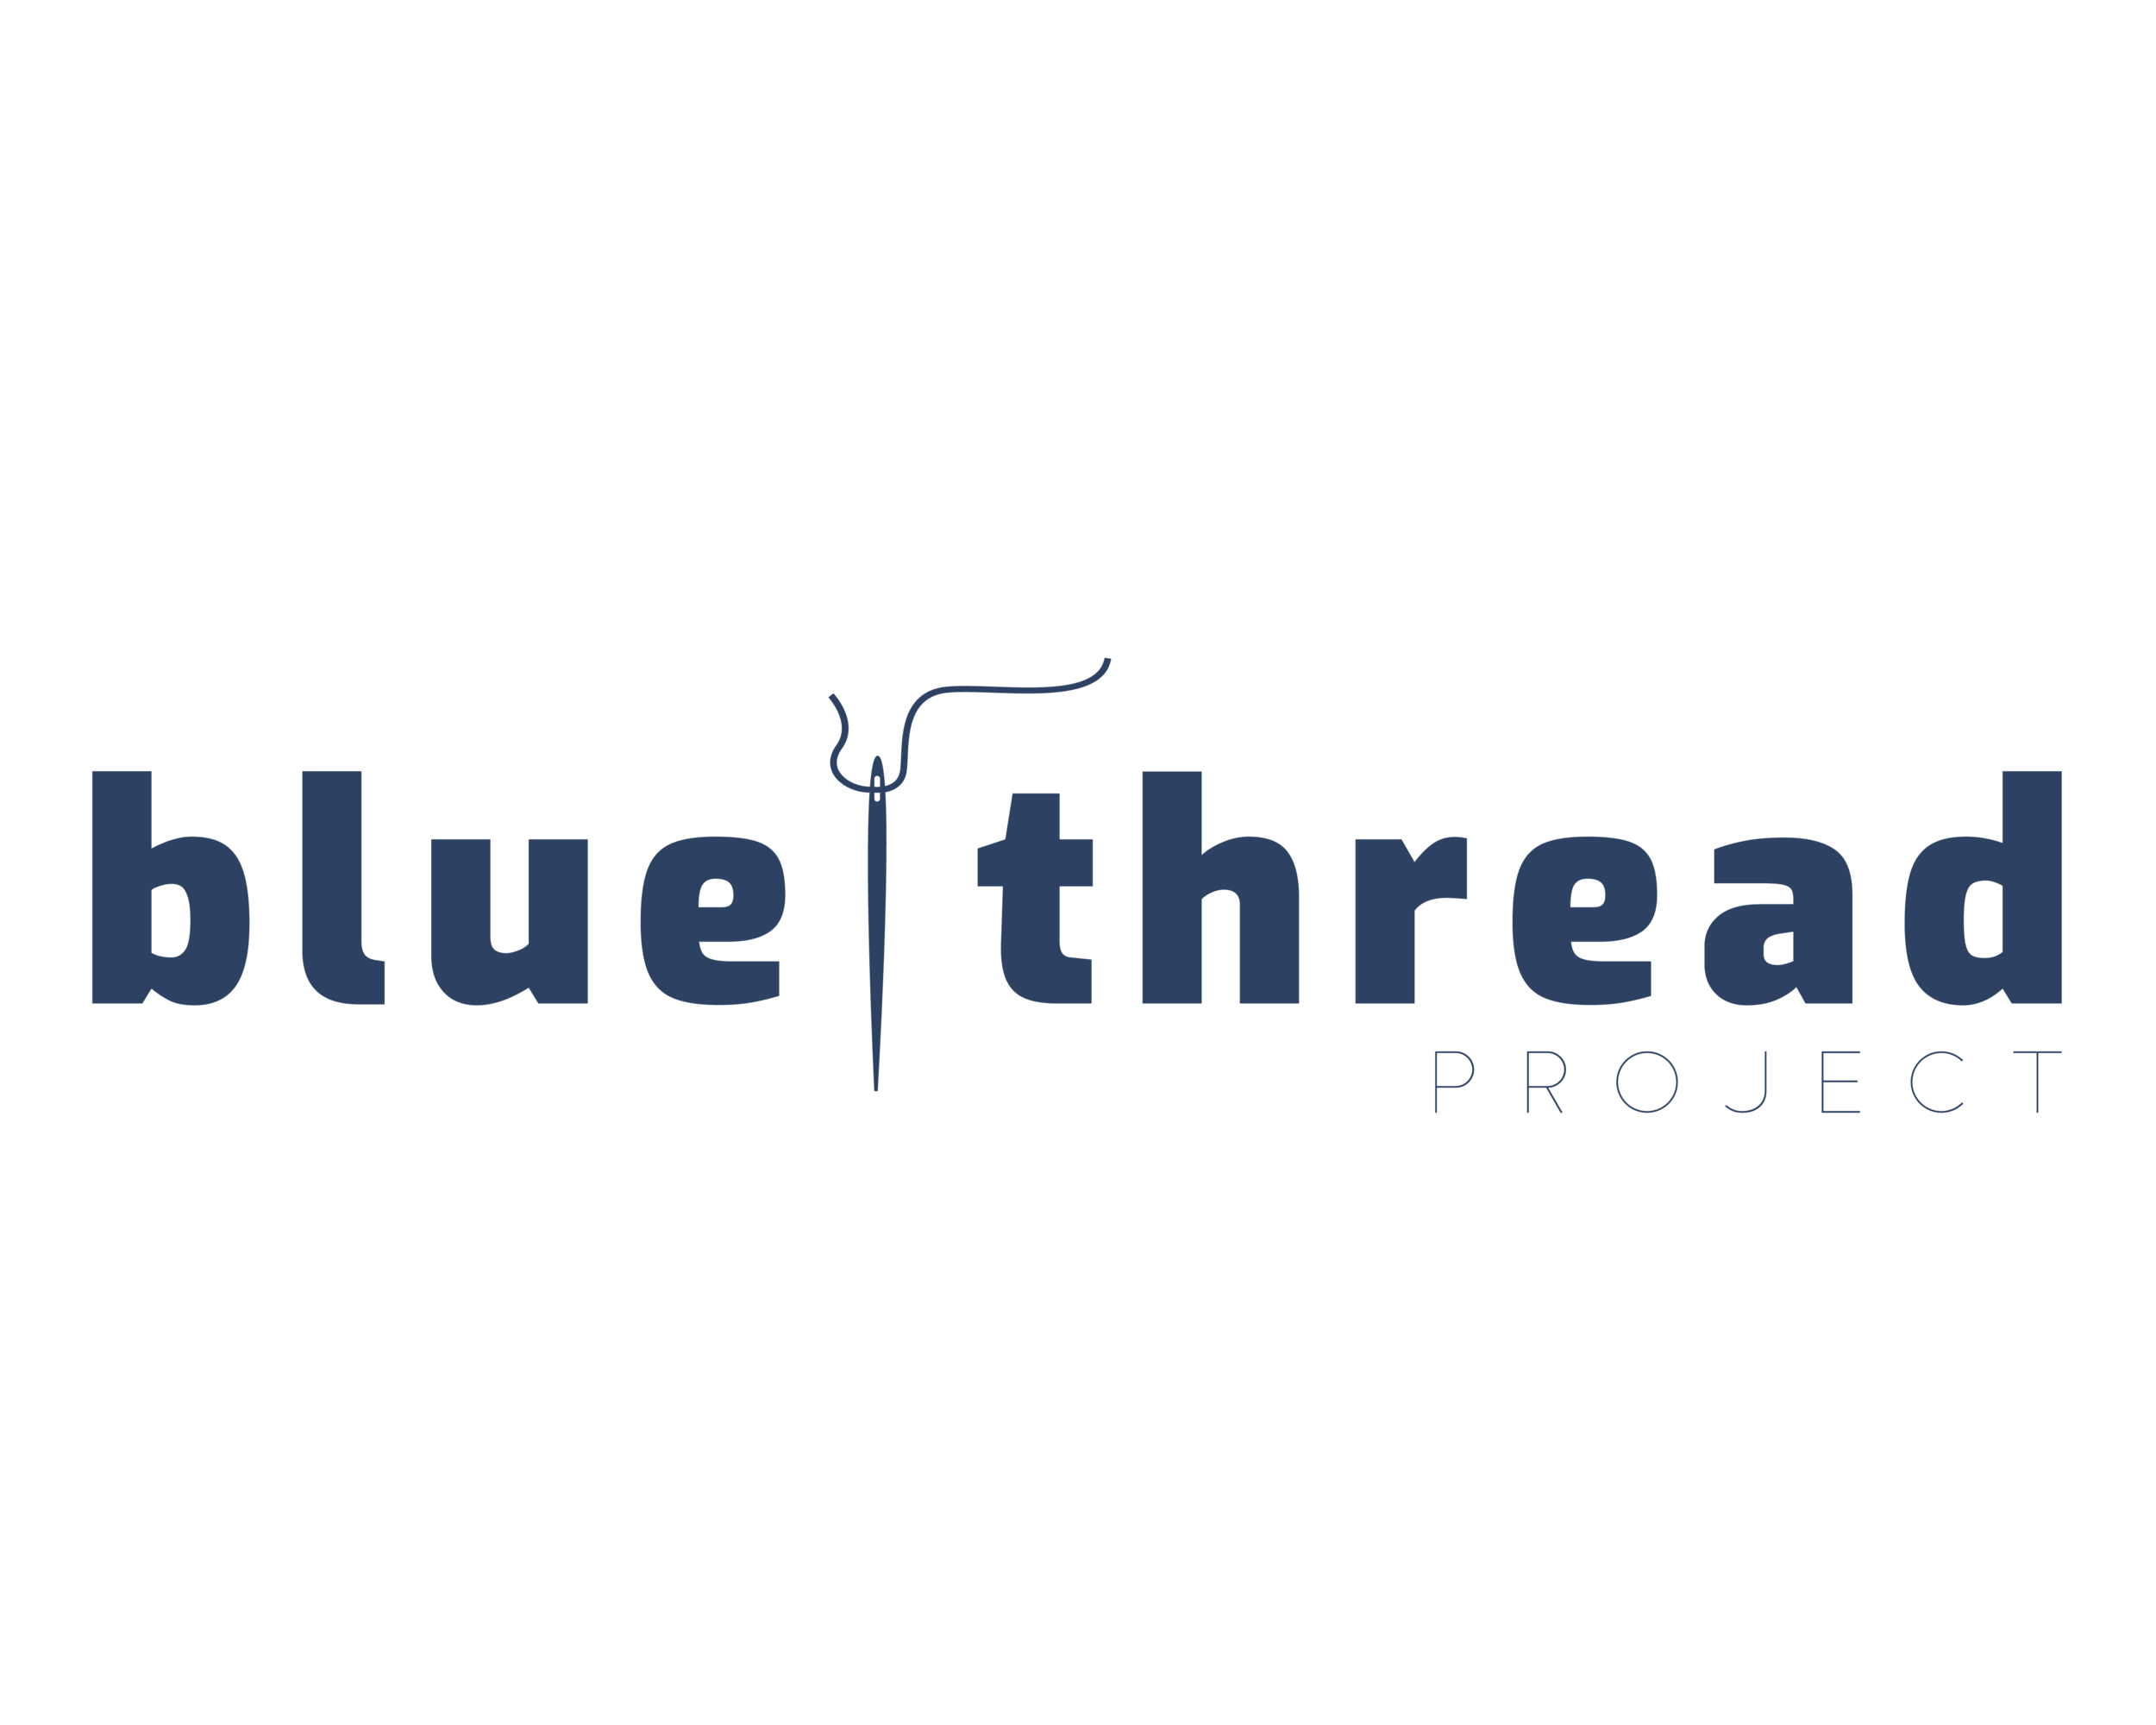 Blue Thread Project logo blue-02.png